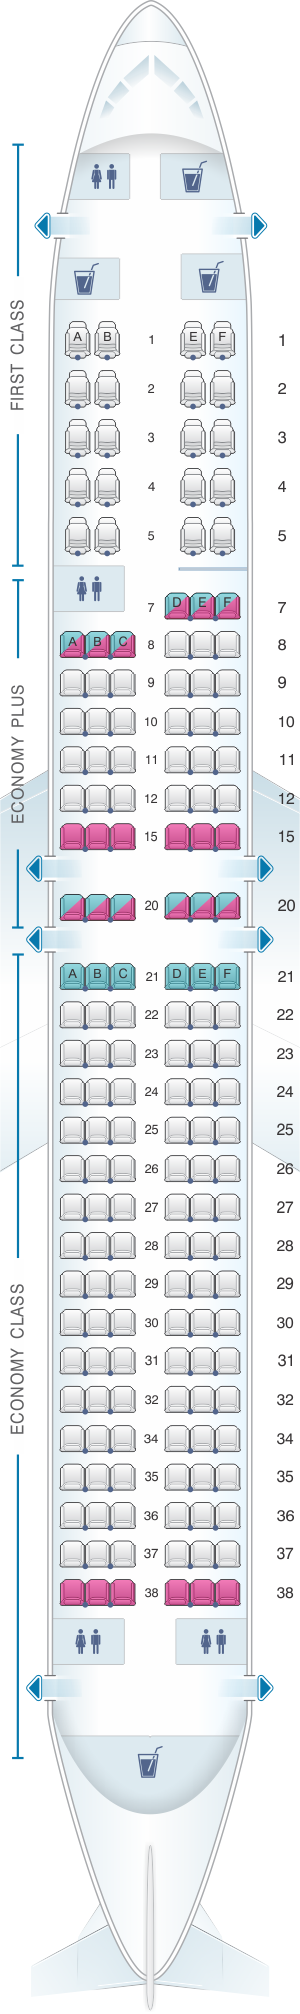 Seat map for United Airlines Boeing B737 900 - version 1